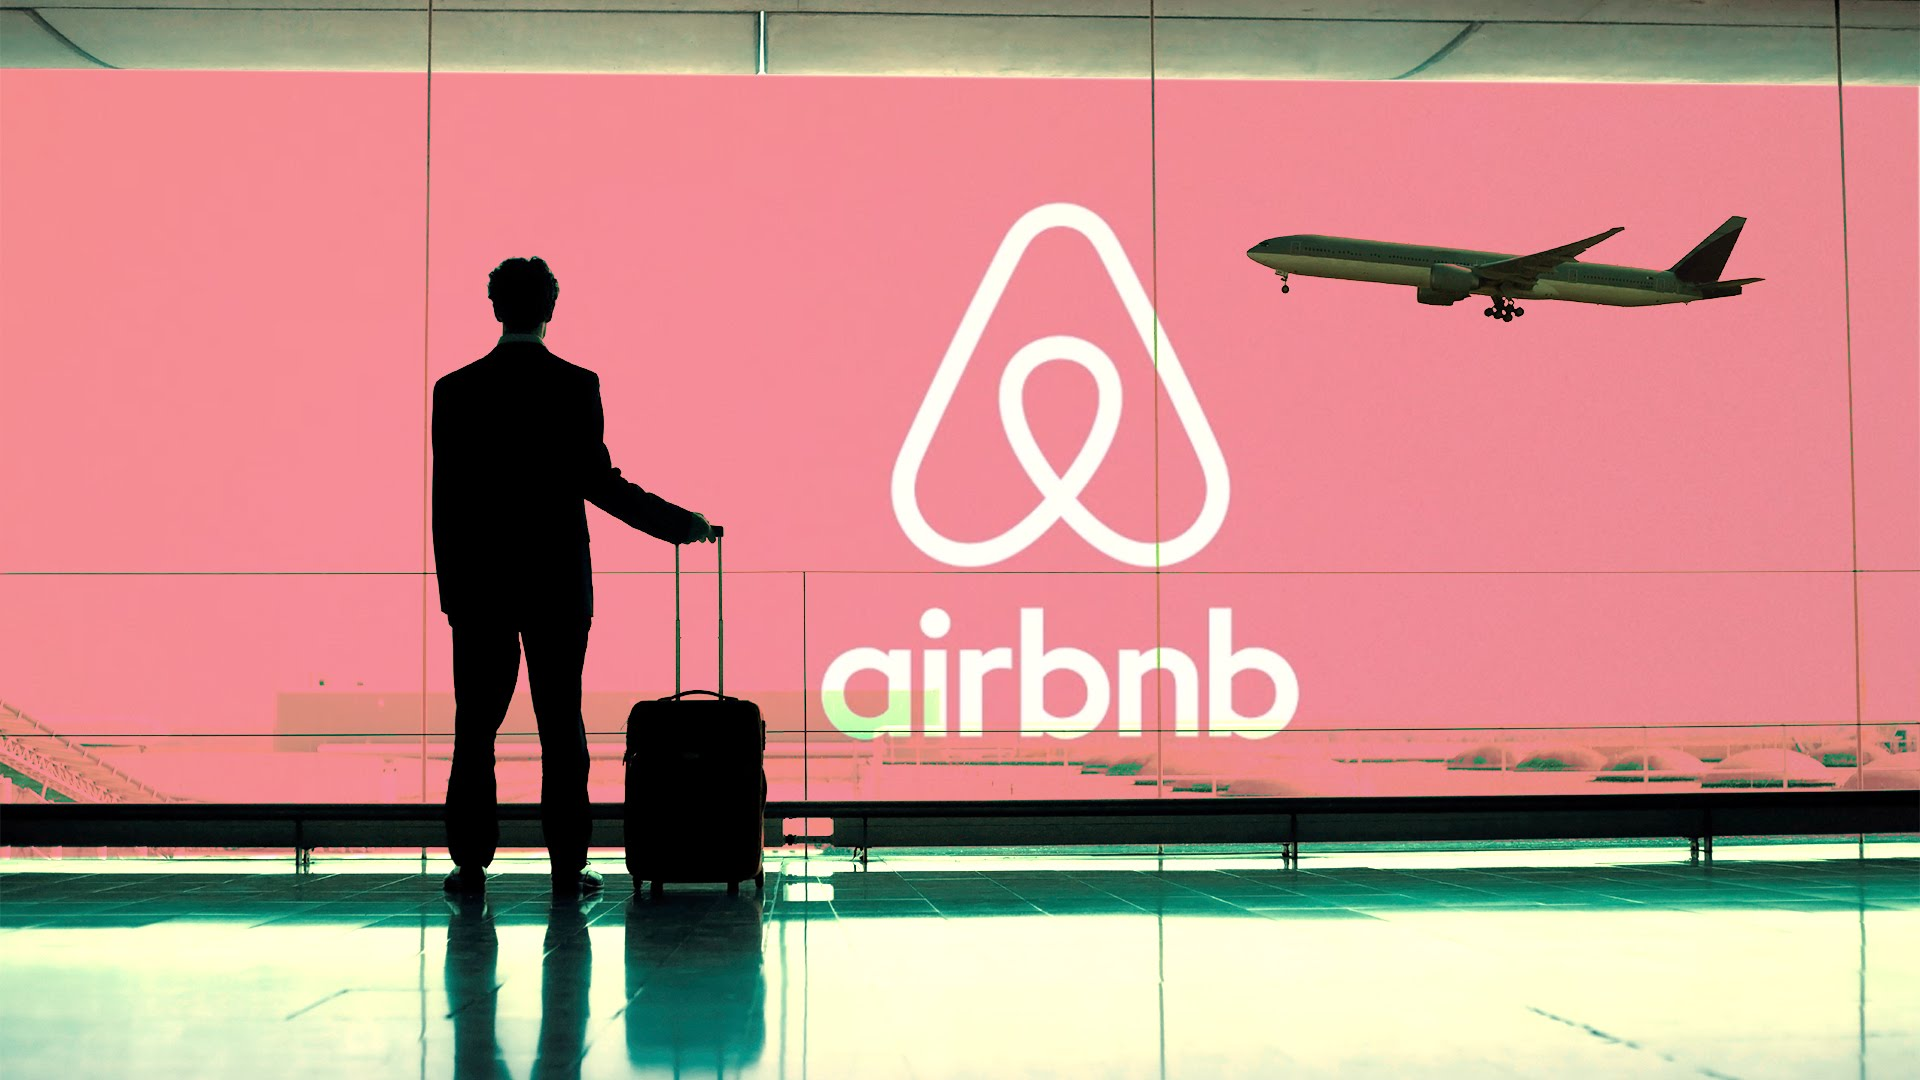 airbnb offers cheap accommodation options